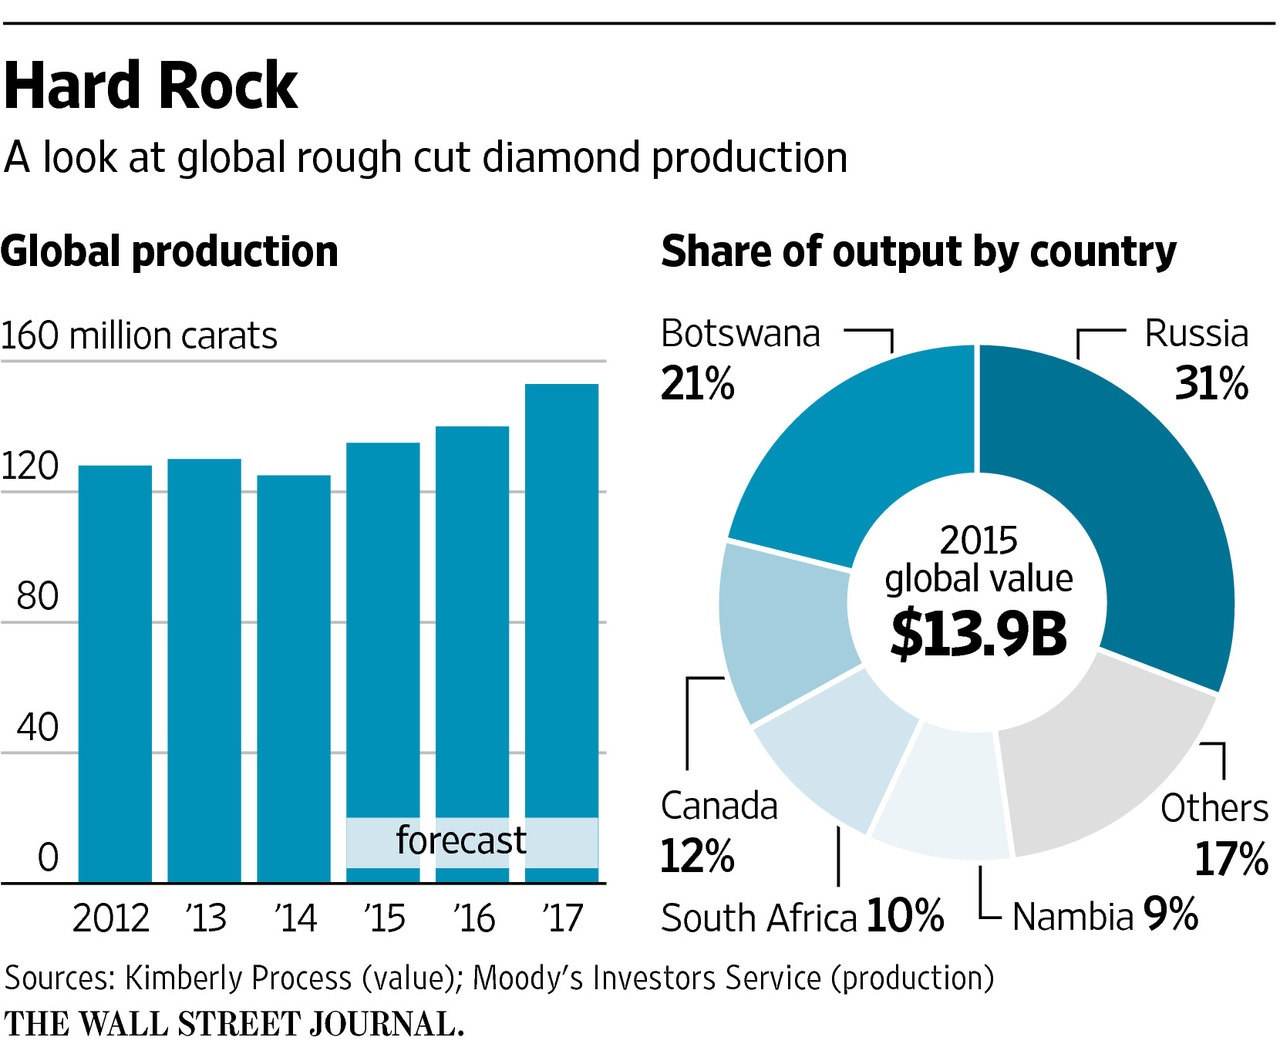 diamond-production-by-country-2015